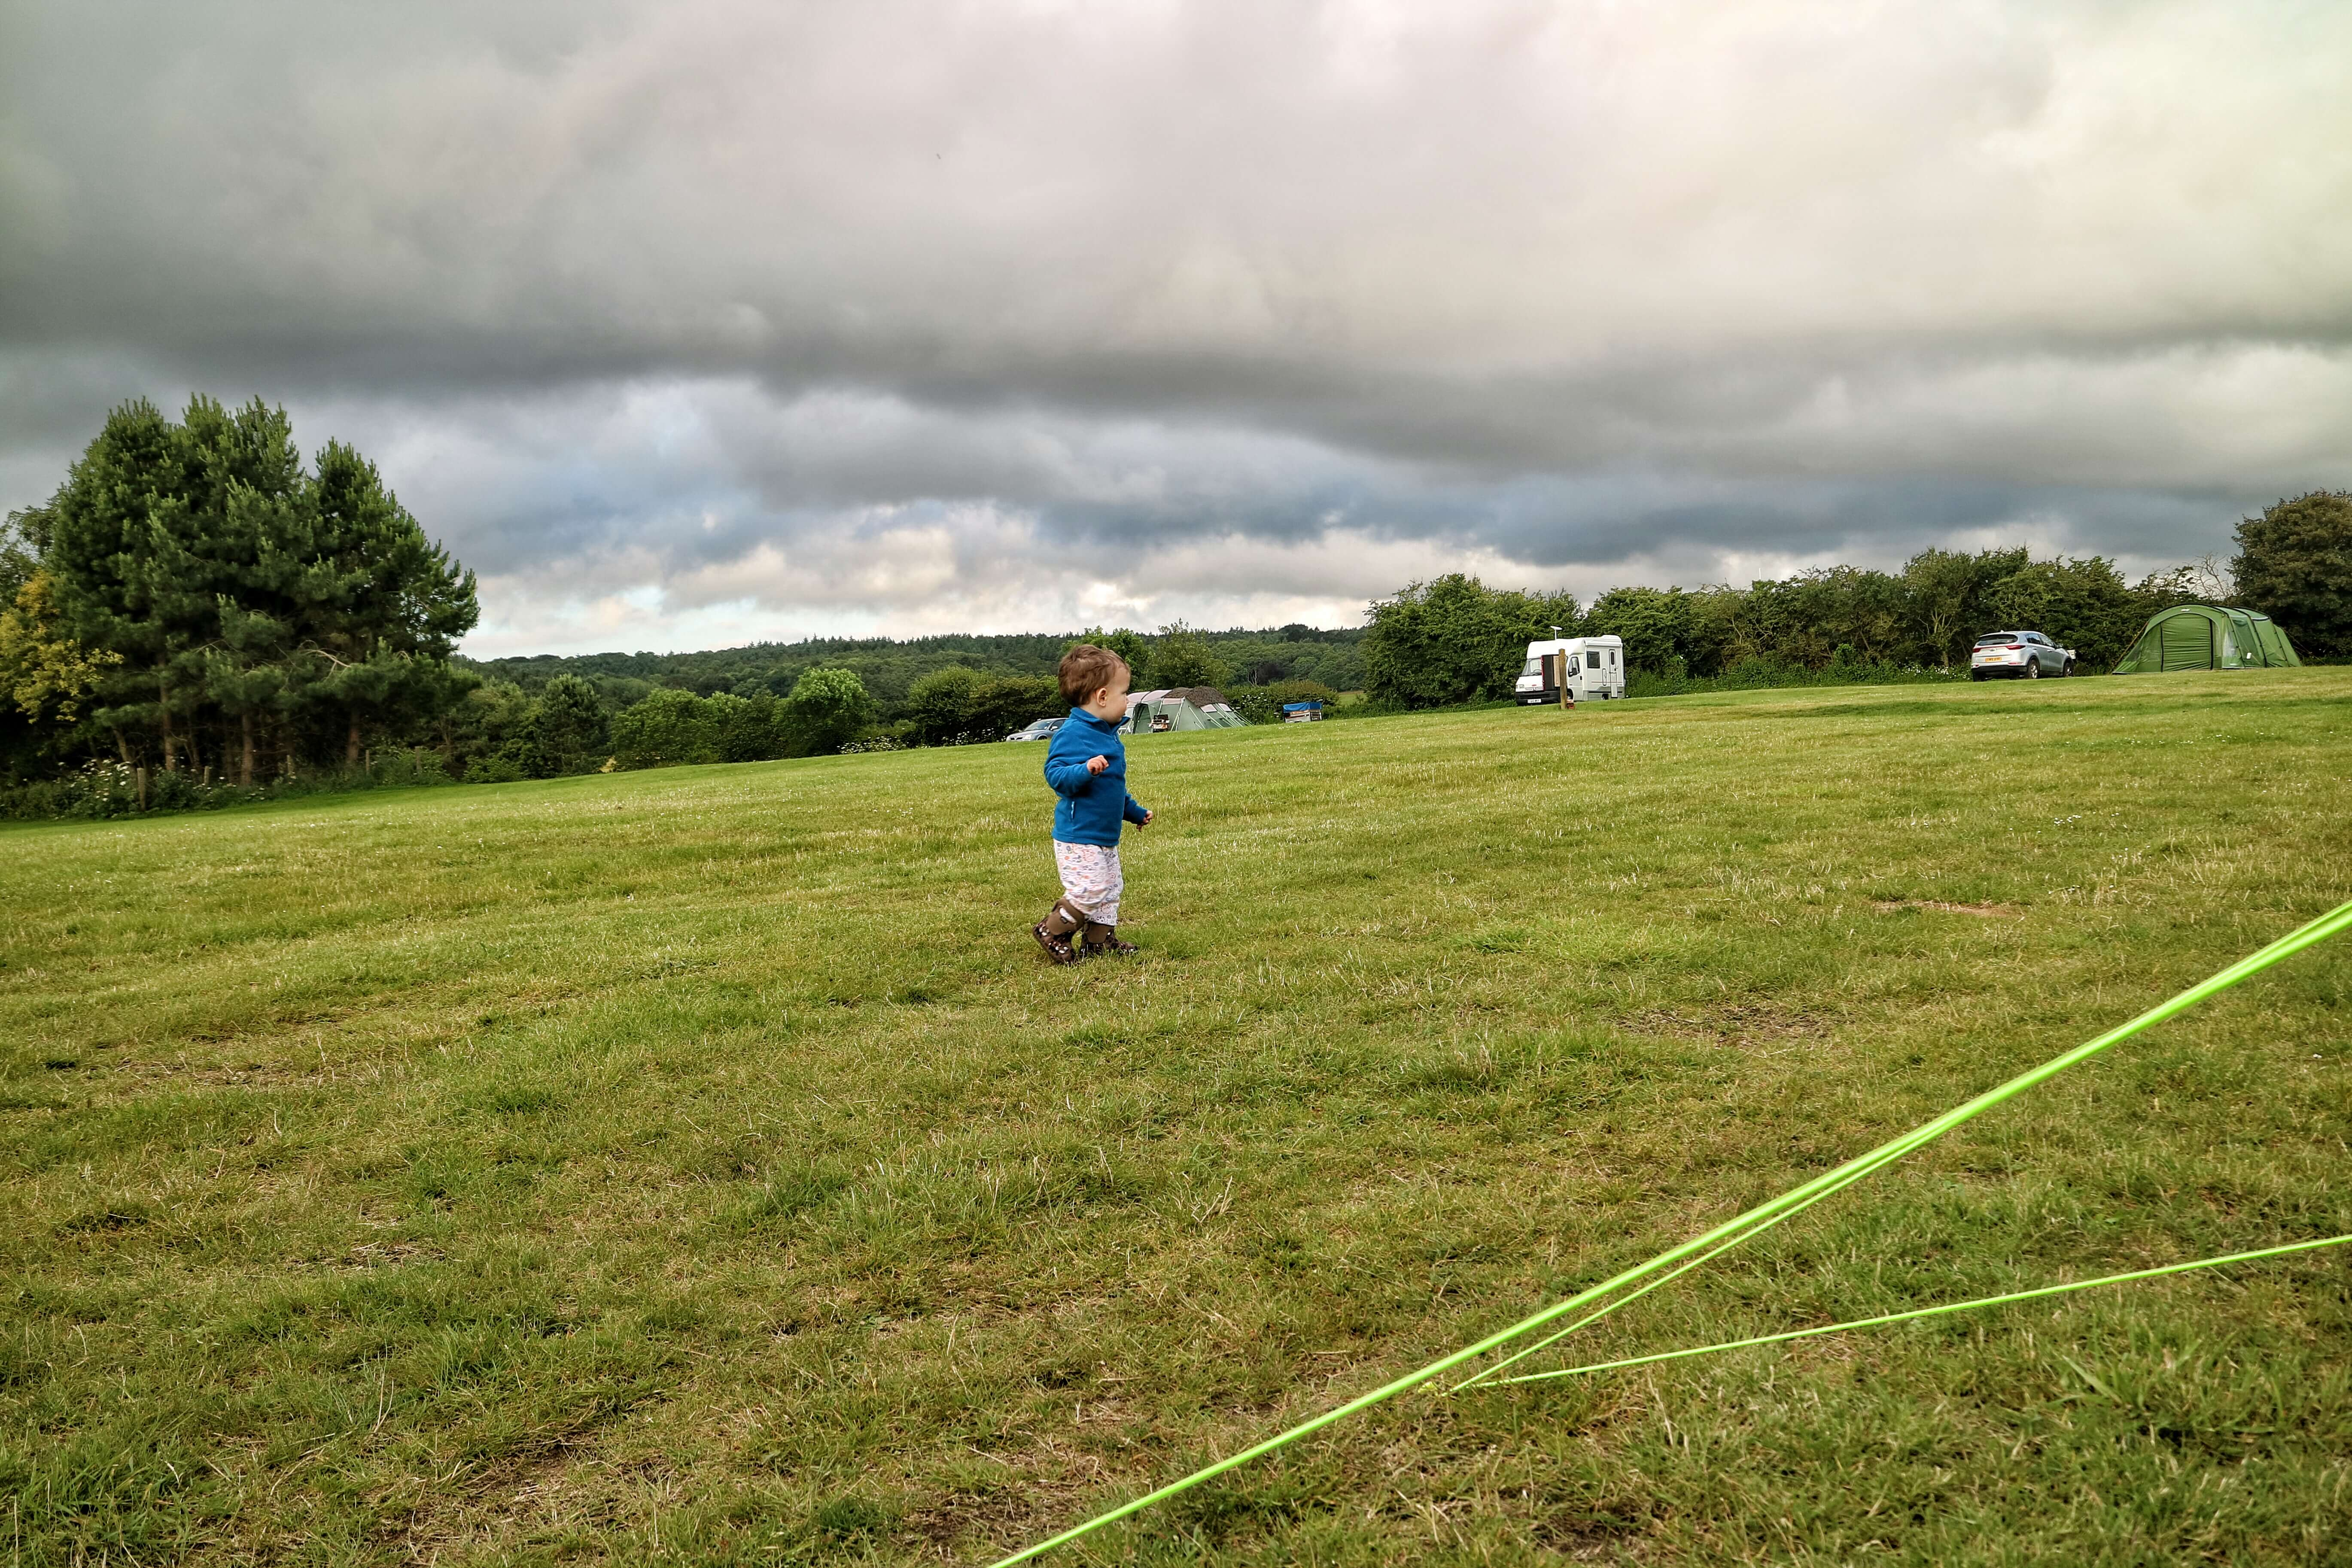 A toddler runs around a campsite